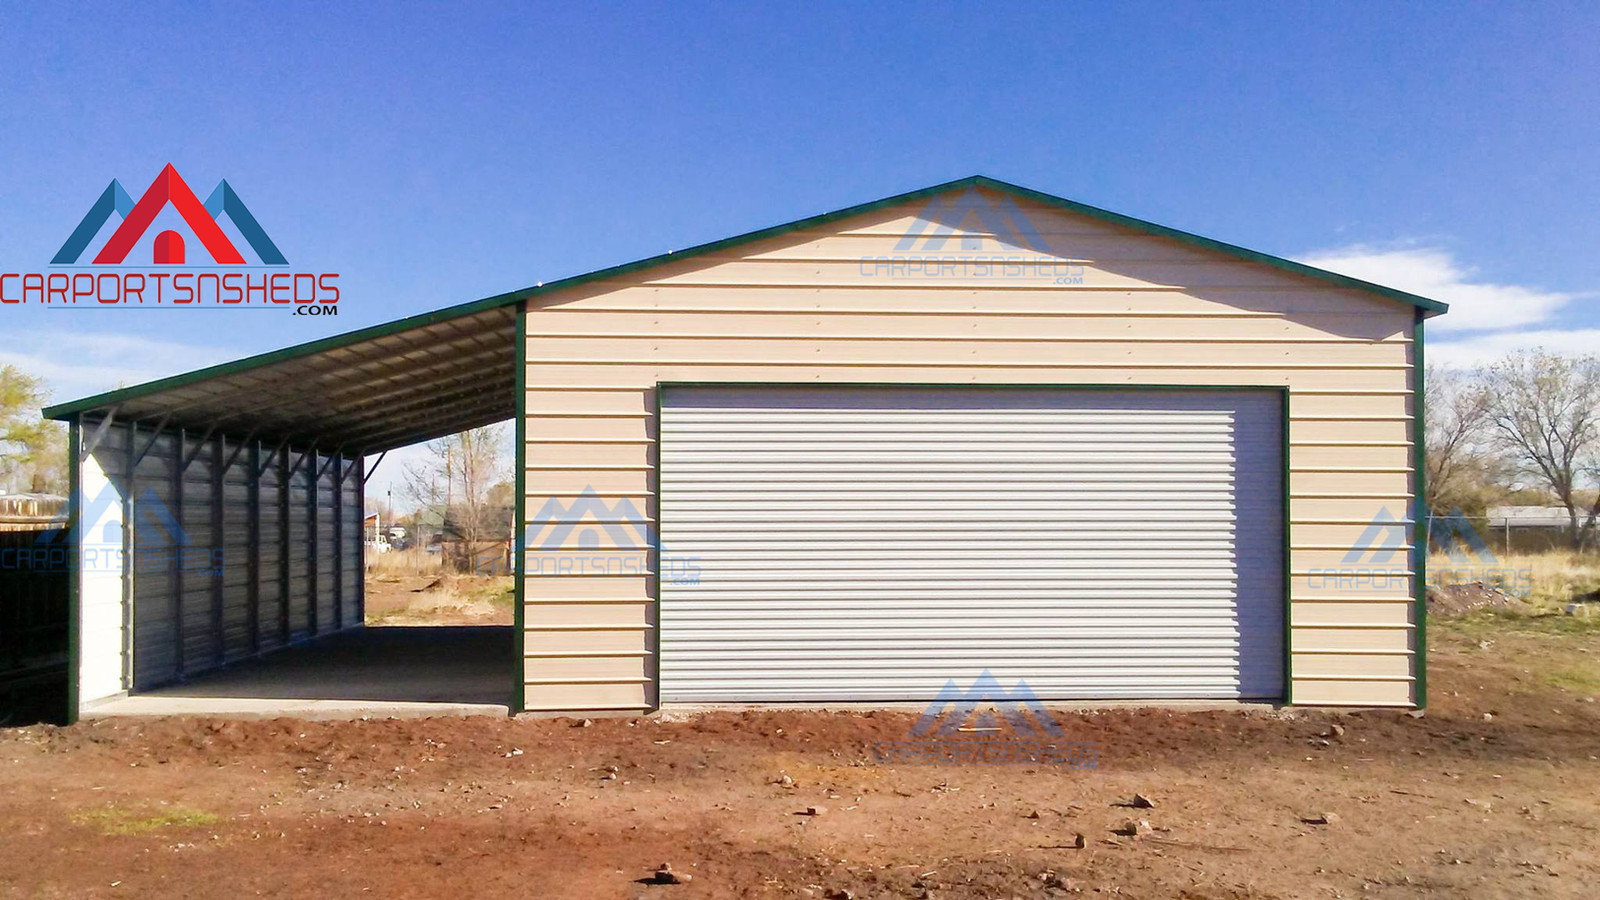 Carportsnshed Com 24x26x12 Garage With Lean Too